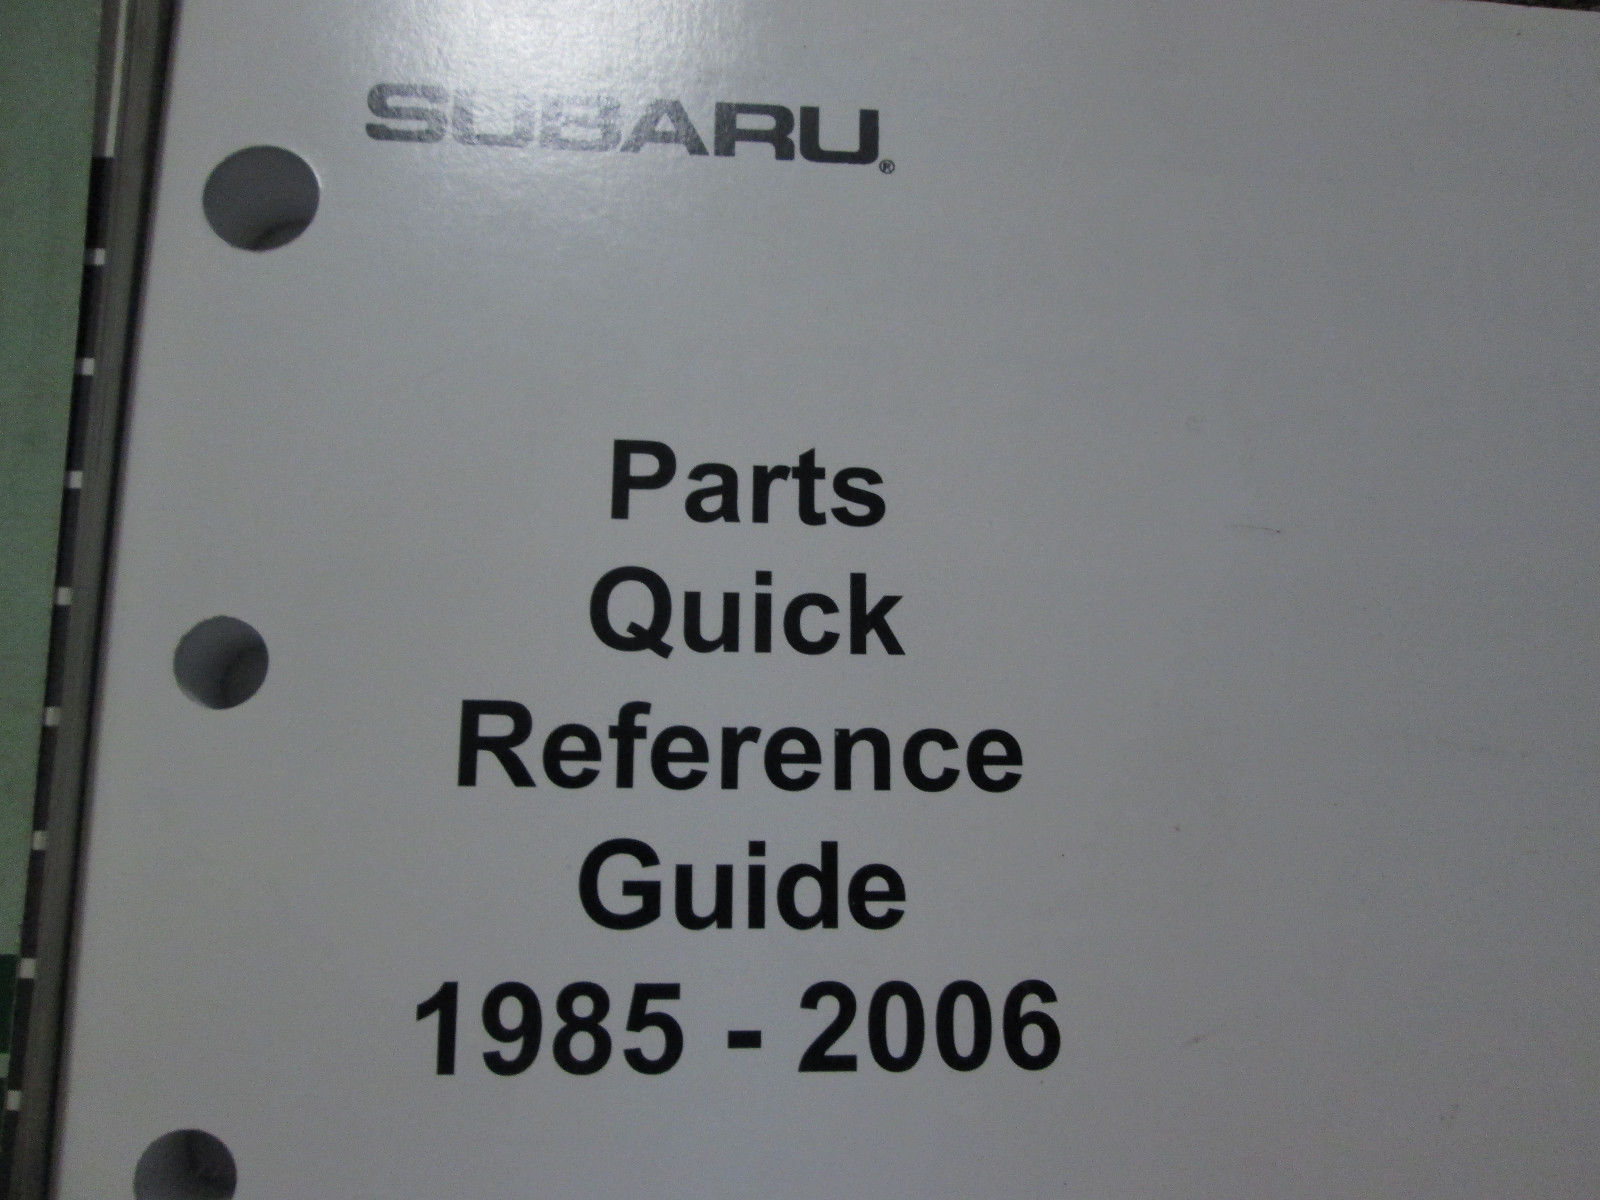 2003 Subaru Forester Service Repair Shop Manual Incomplete Set Factory OEM Books